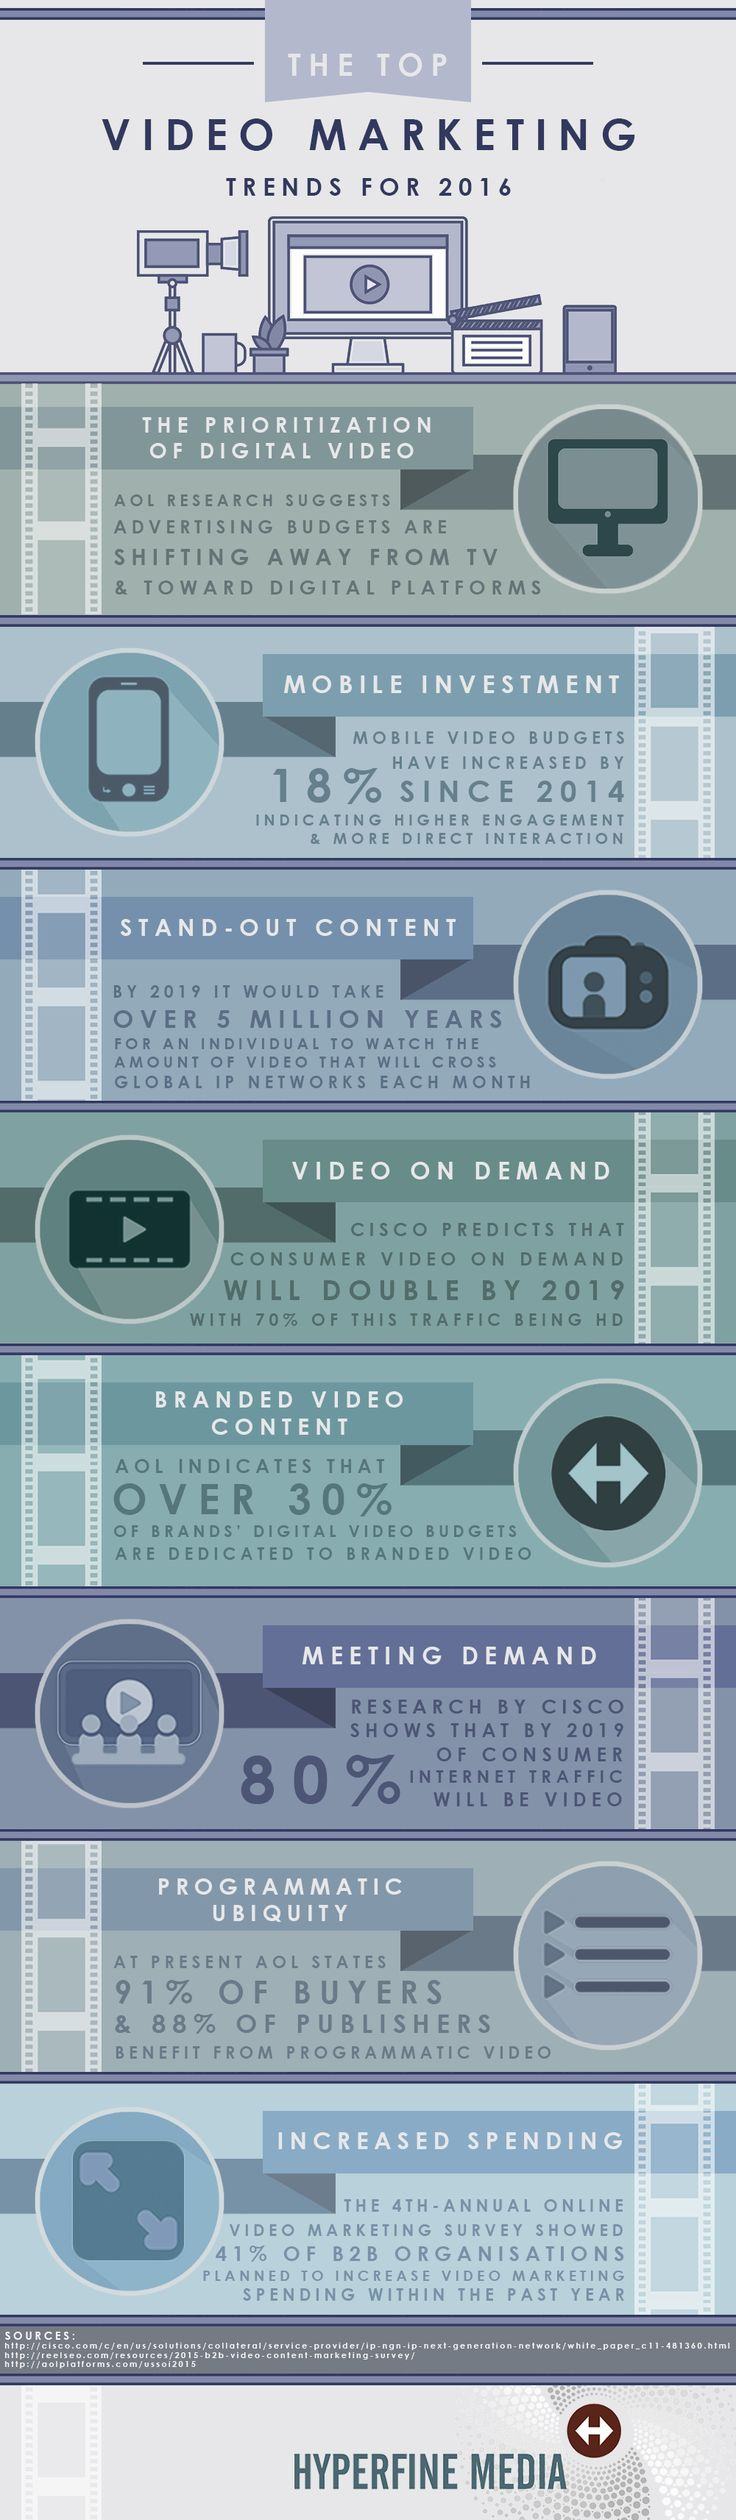 The Top Video Marketing Trends for 2016 #infographic #Marketing #Business #VideoMarketing